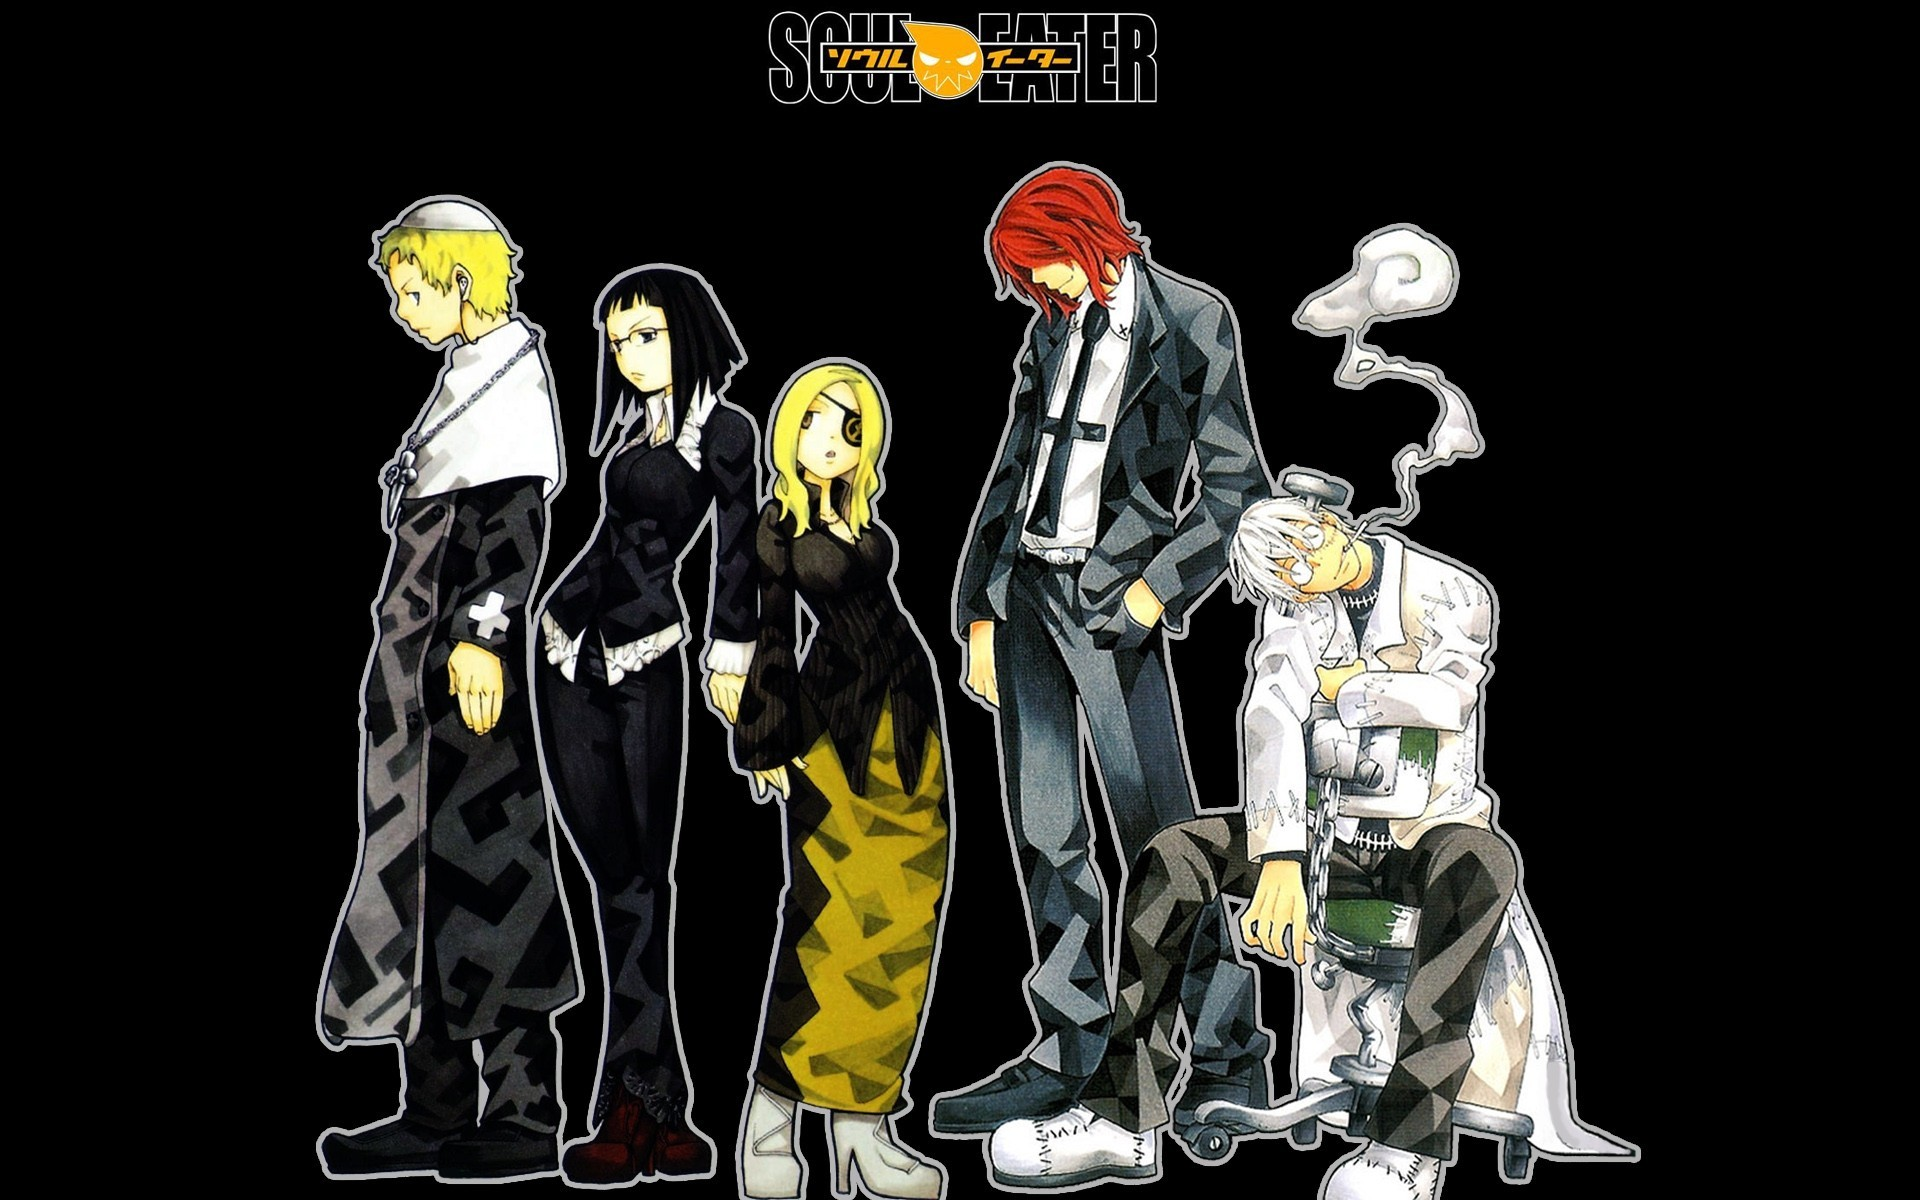 soul eater black background HD Wallpaper